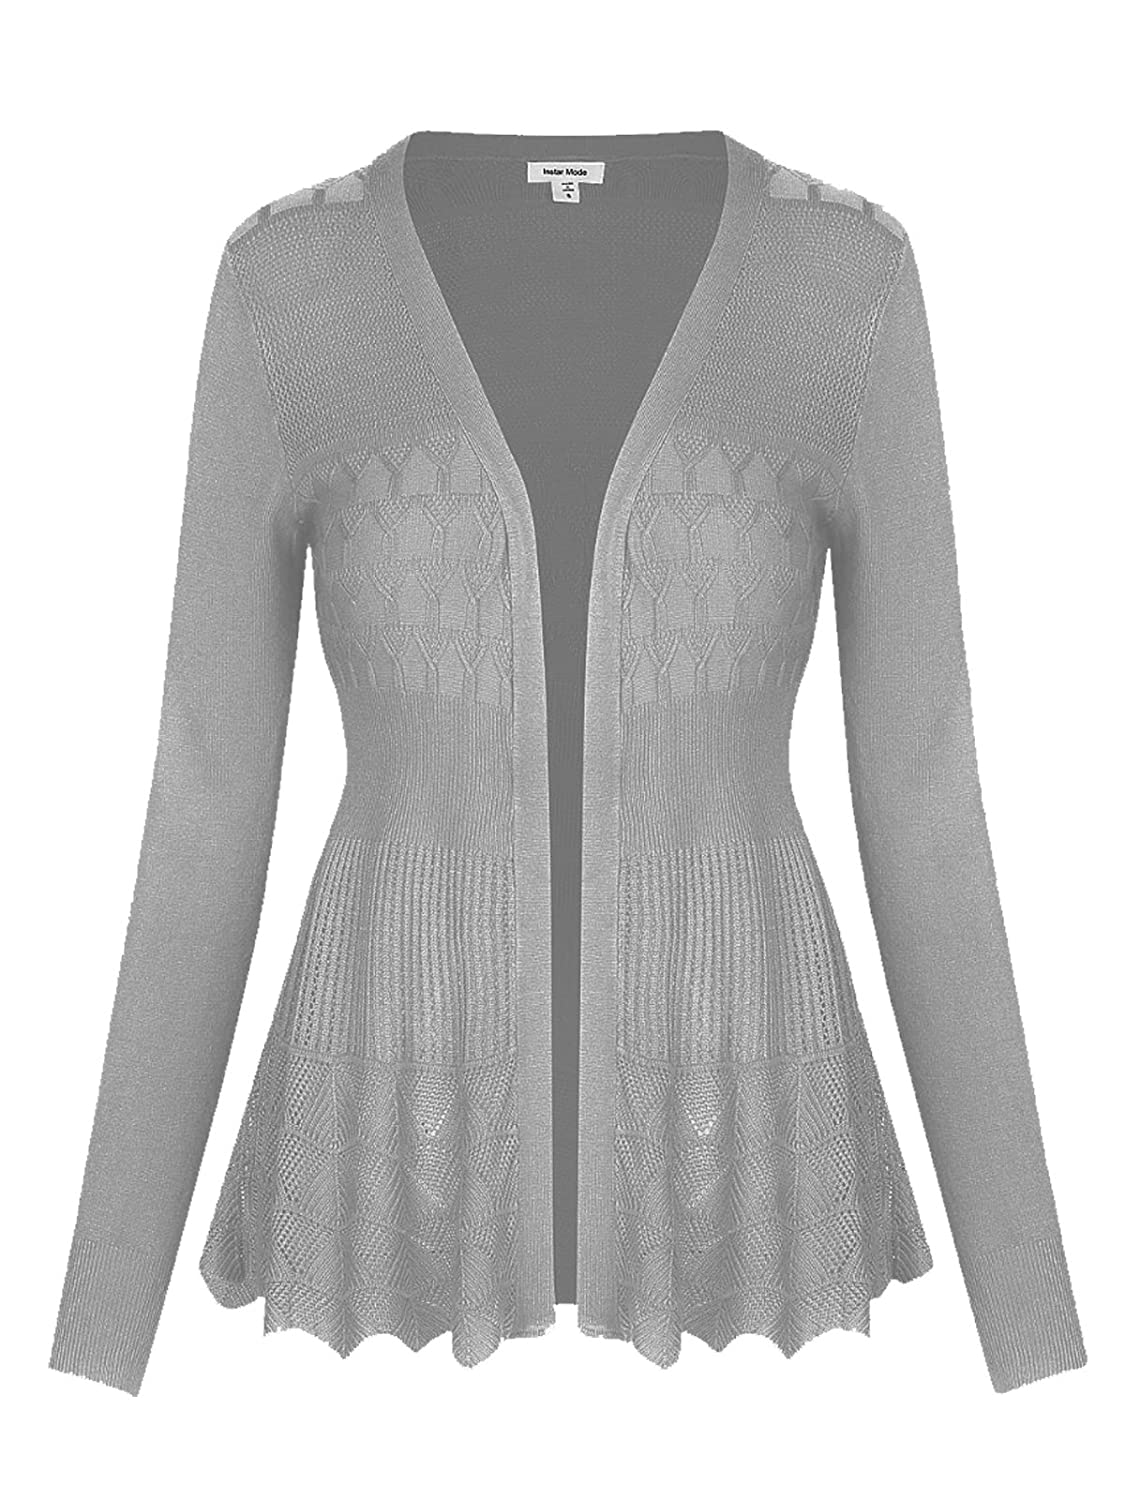 C09115 H.grey Instar Mode InstarMode Women's Long Sleeve Crochet Knit Sweater Draped Open Cardigan